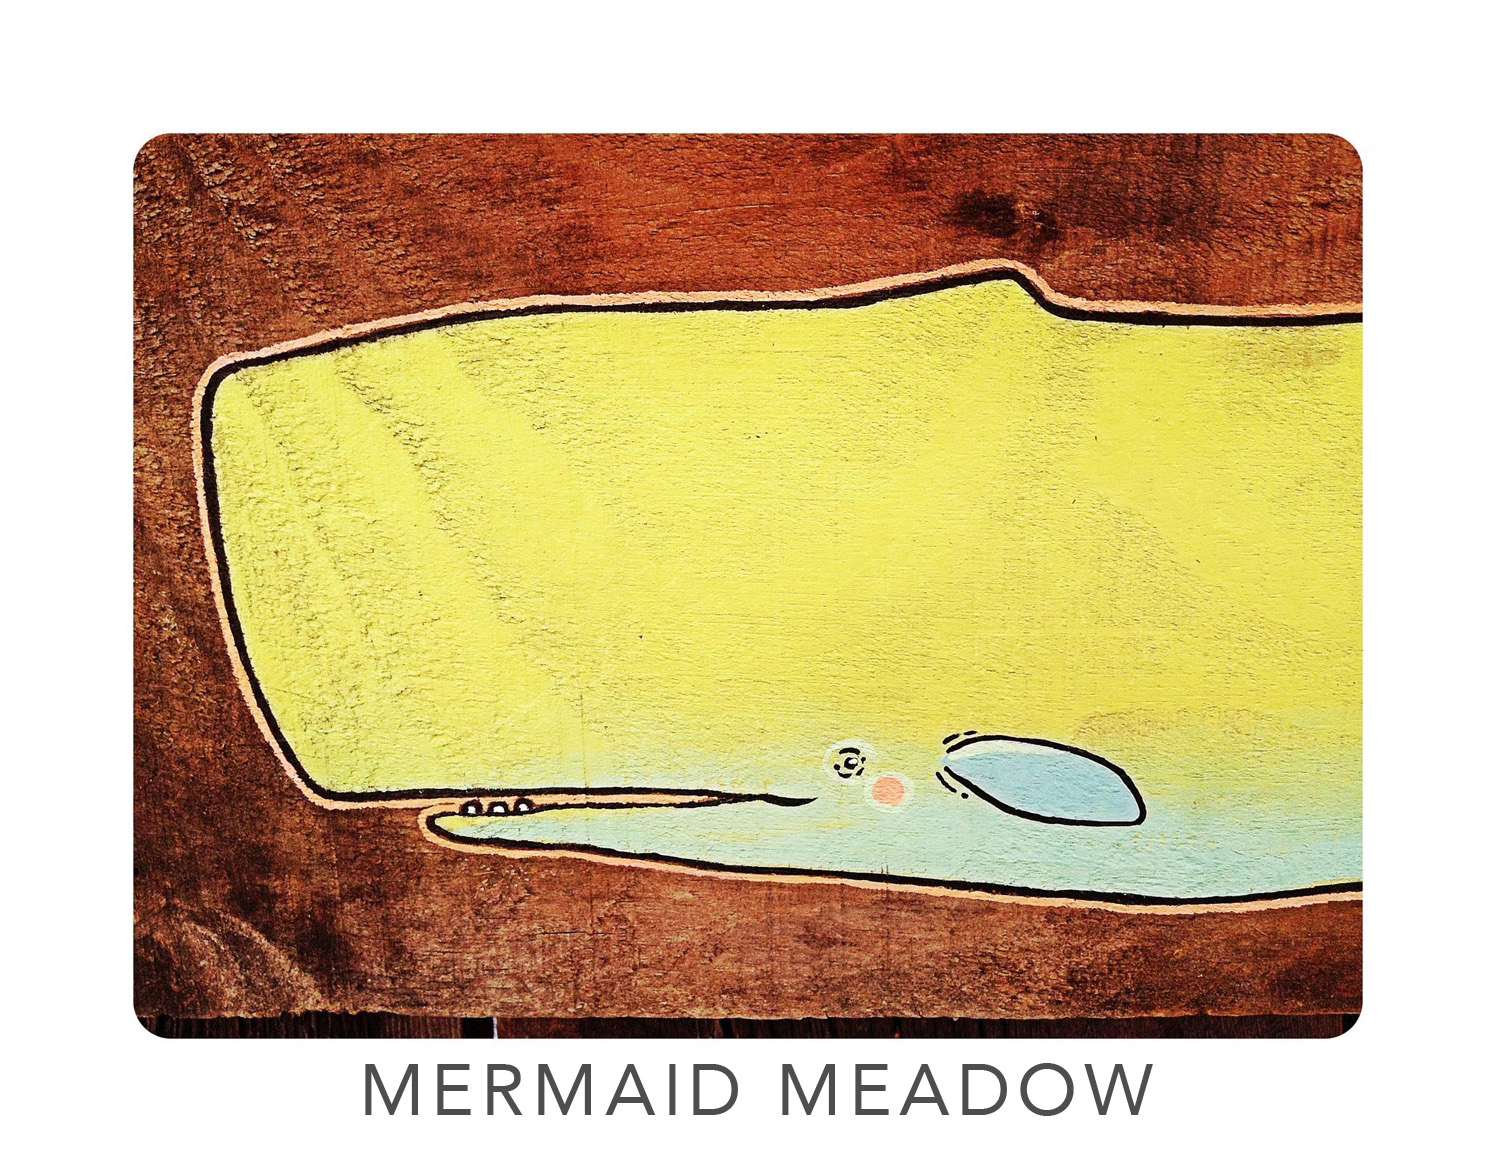 mermaid meadow | Illustrative Artworks on Reclaimed Maine Barnwood